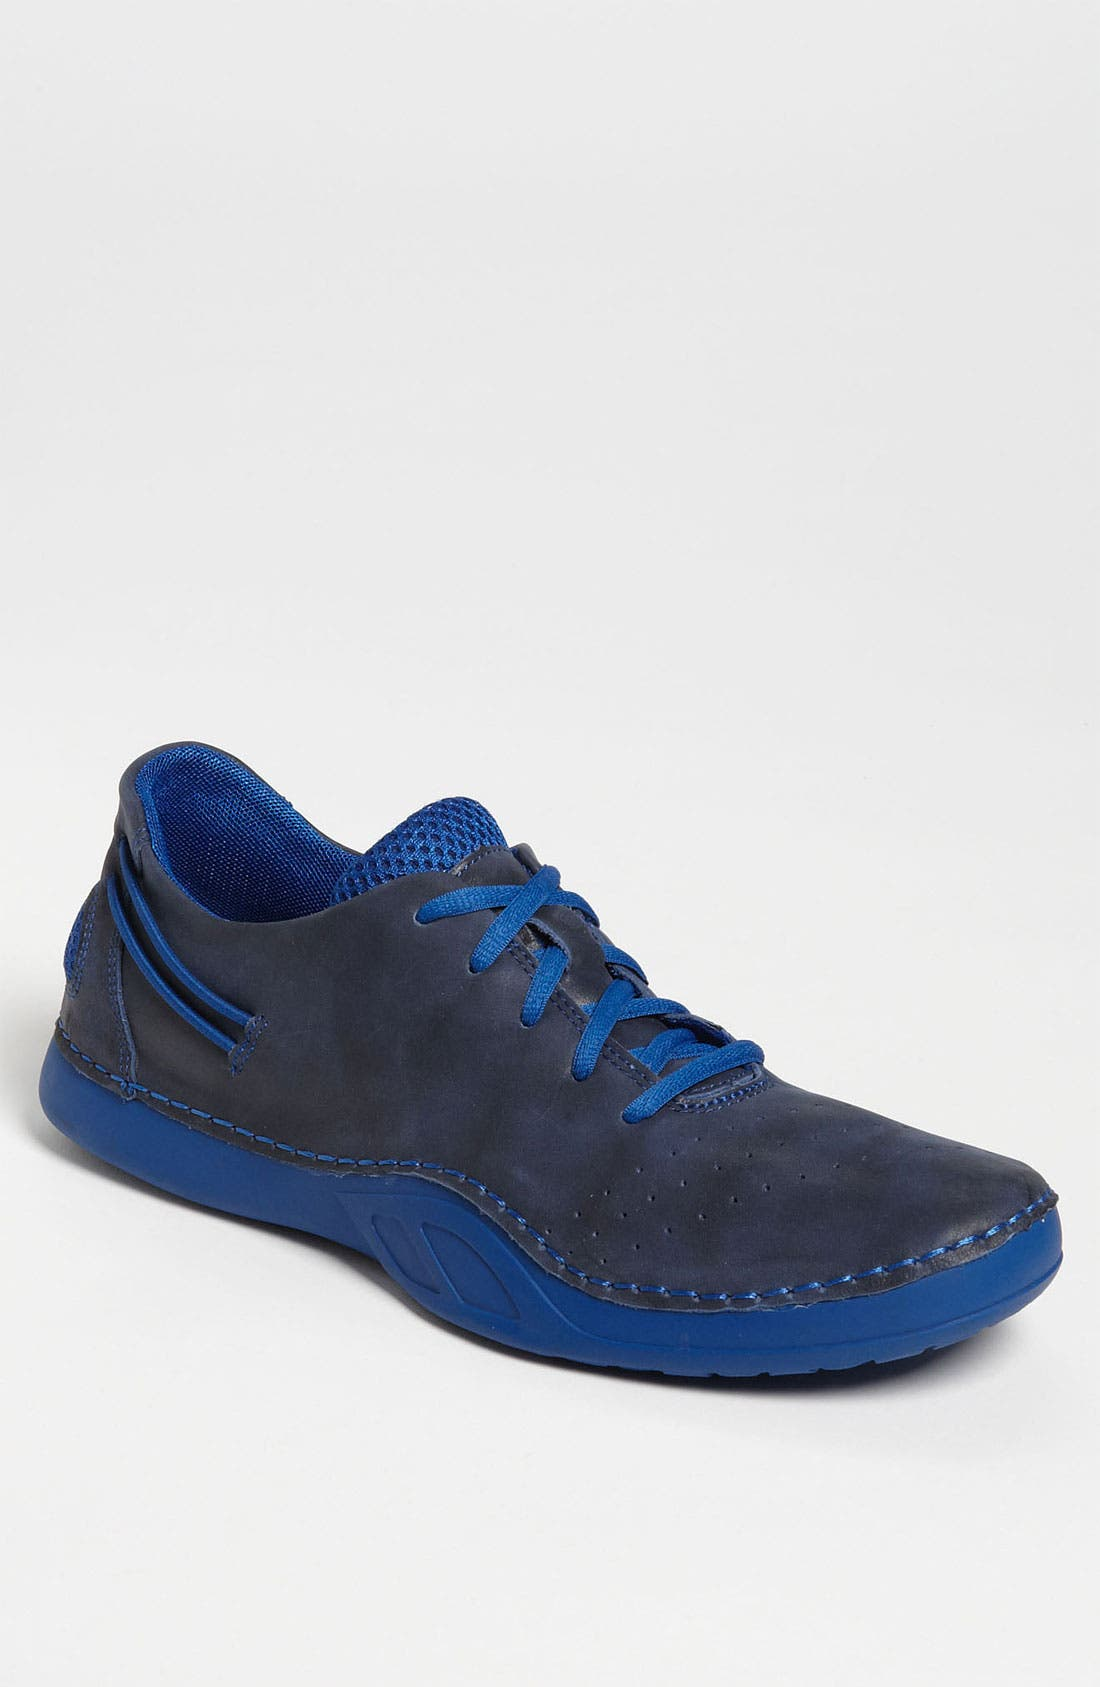 Alternate Image 1 Selected - Kenneth Cole Reaction 'Lift Off' Sneaker